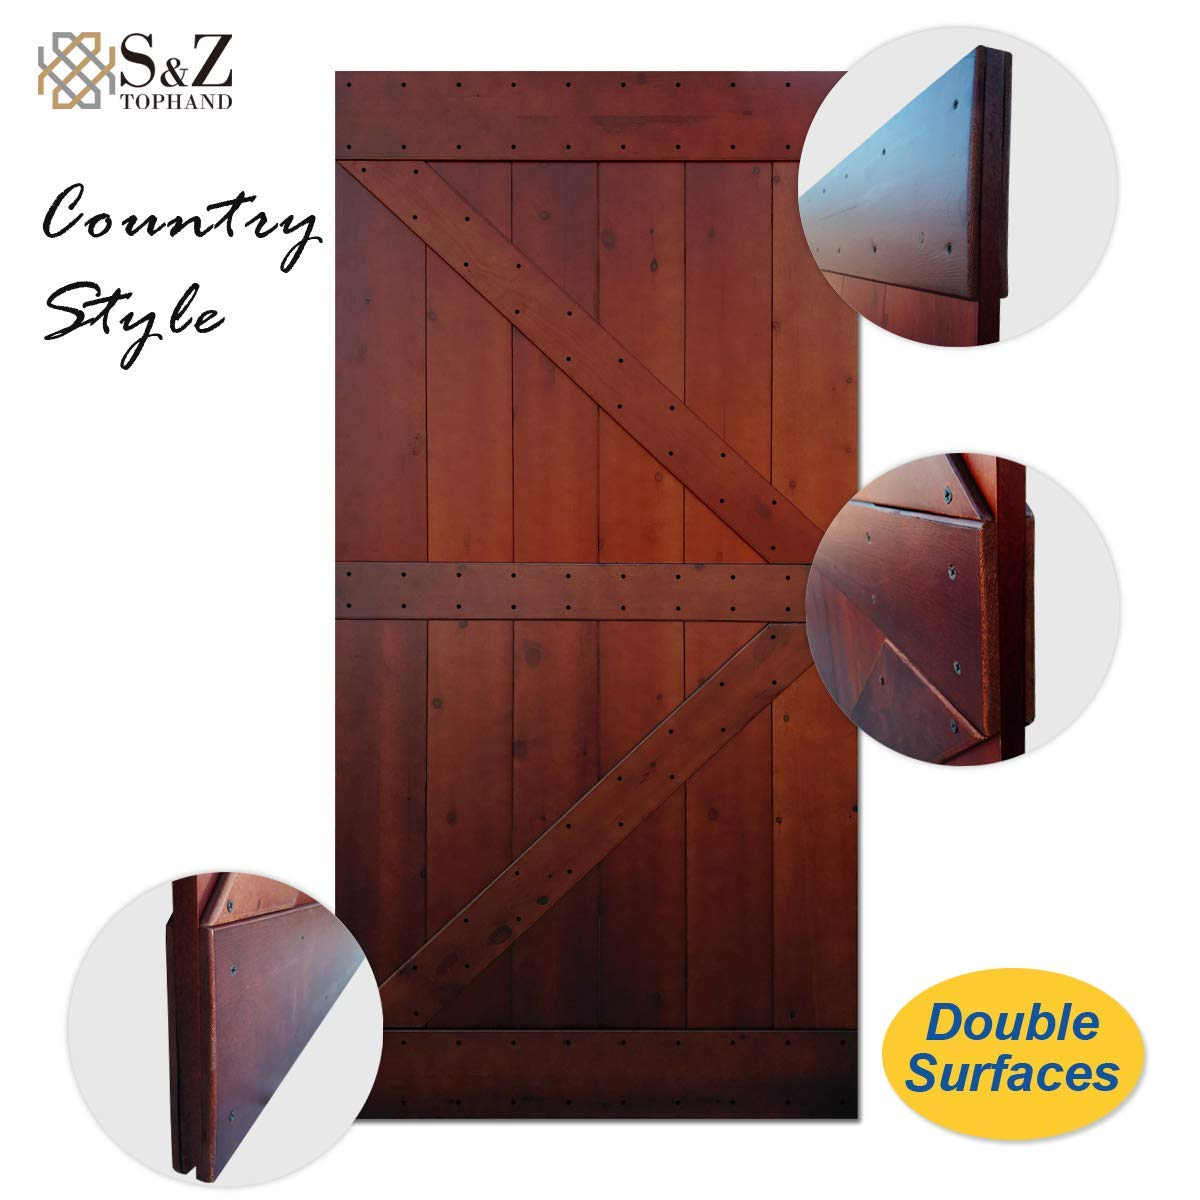 Coffee x 84 in British Brace Knotty Pine Barn Door//Sliding Door//Double Surfaces//A Simple Assembly is Required. 42, Coffee Finished Antique Art S/&Z TOPHAND 42 in